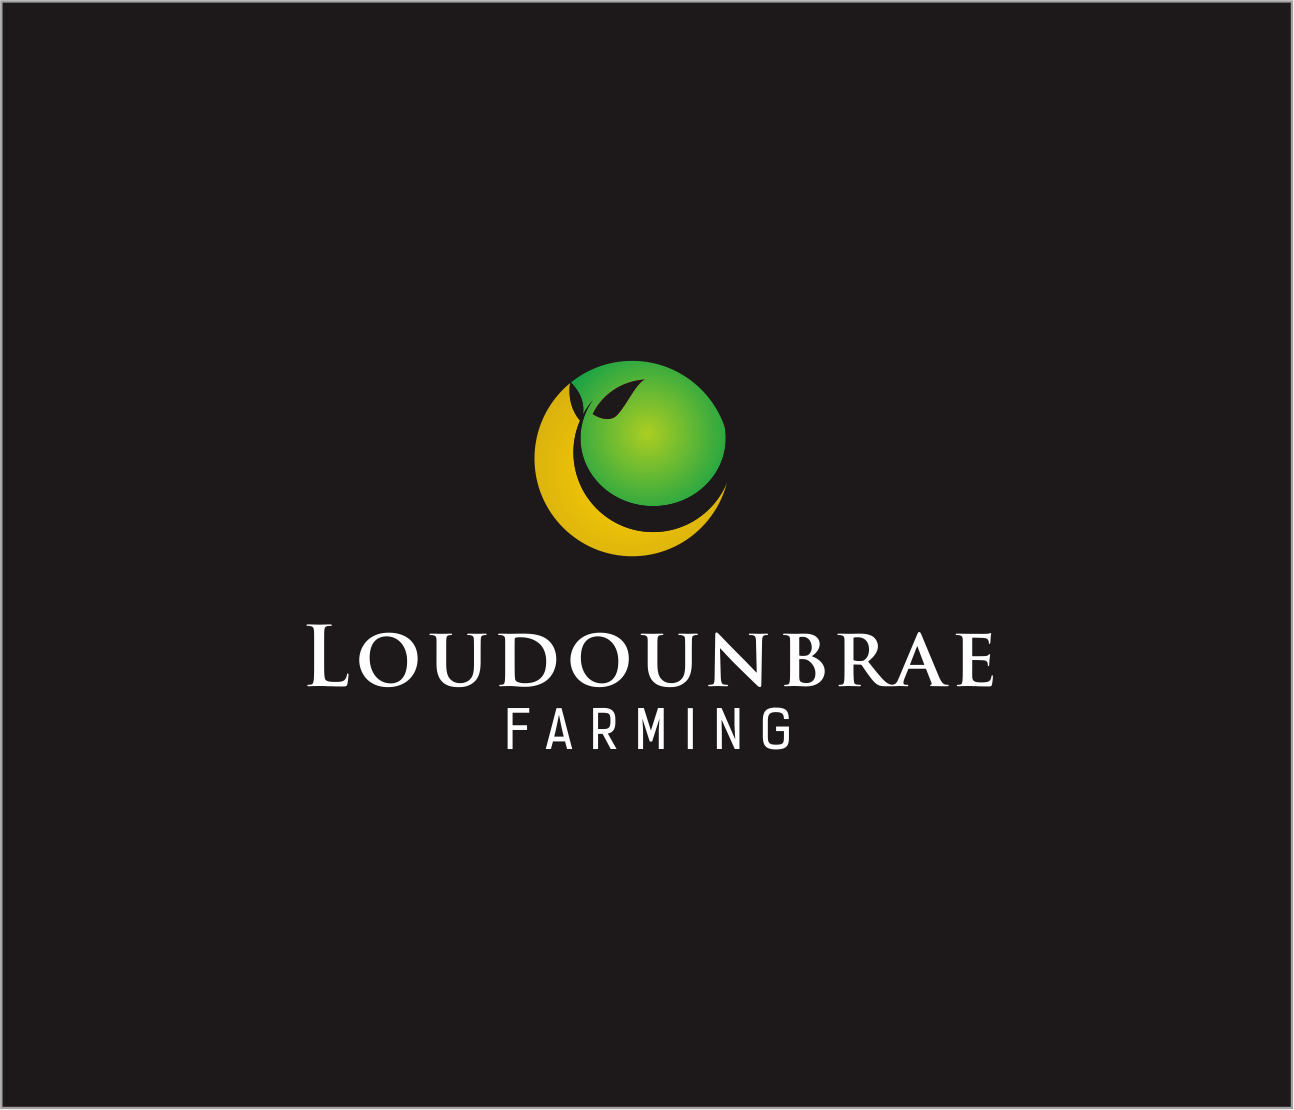 Logo Design by Armada Jamaluddin - Entry No. 84 in the Logo Design Contest Creative Logo Design for Loudounbrae Farming.